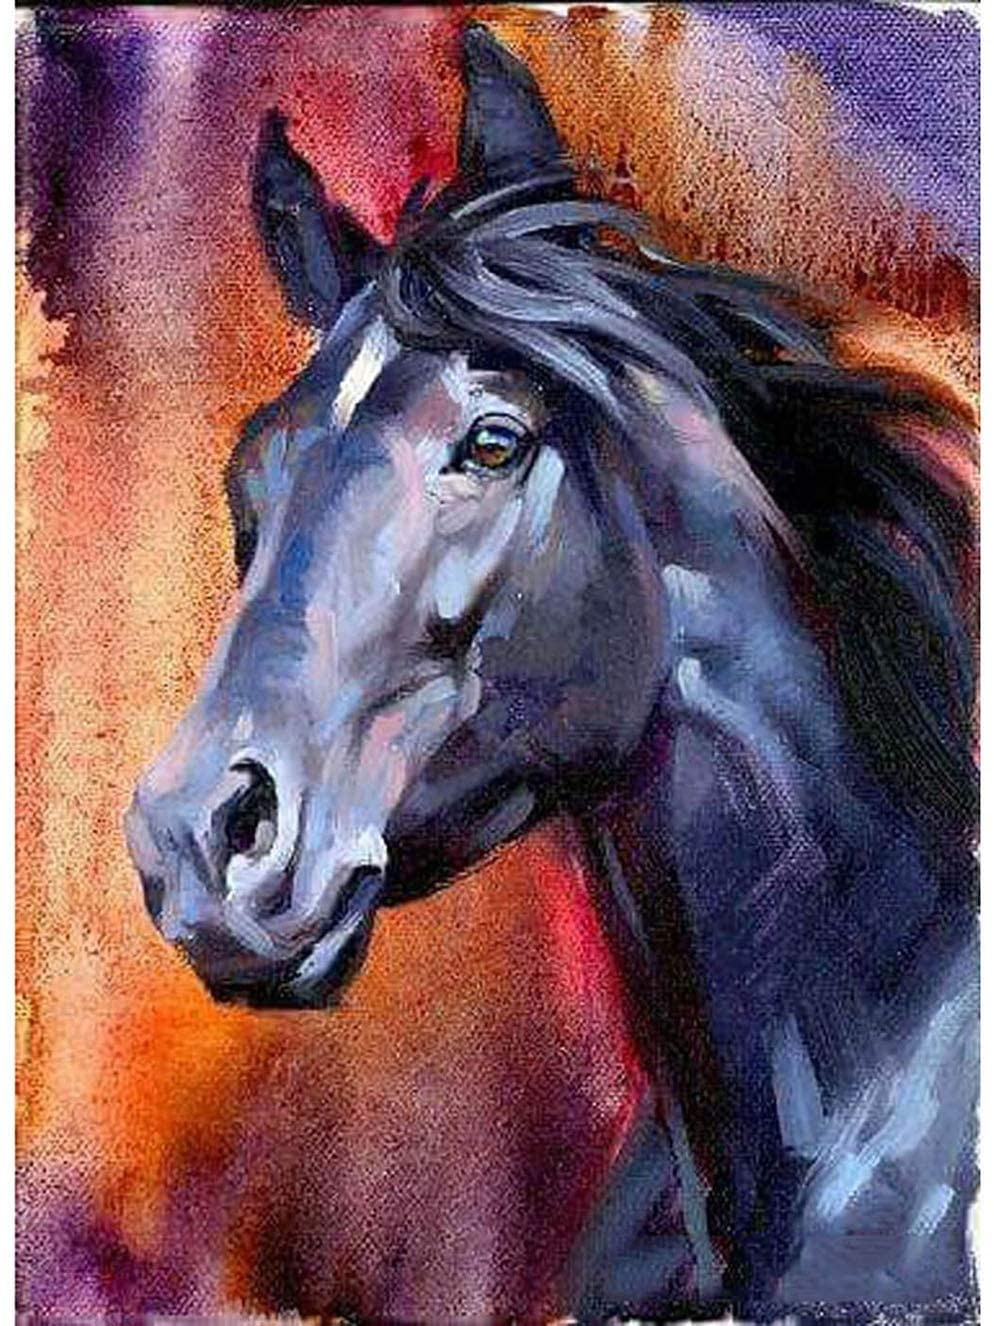 Bimkole 5D Diamond Painting Horse Animal by Number Kits Paint with Diamonds Arts Craft Home Decor, 12x16 inch(M7-1199)